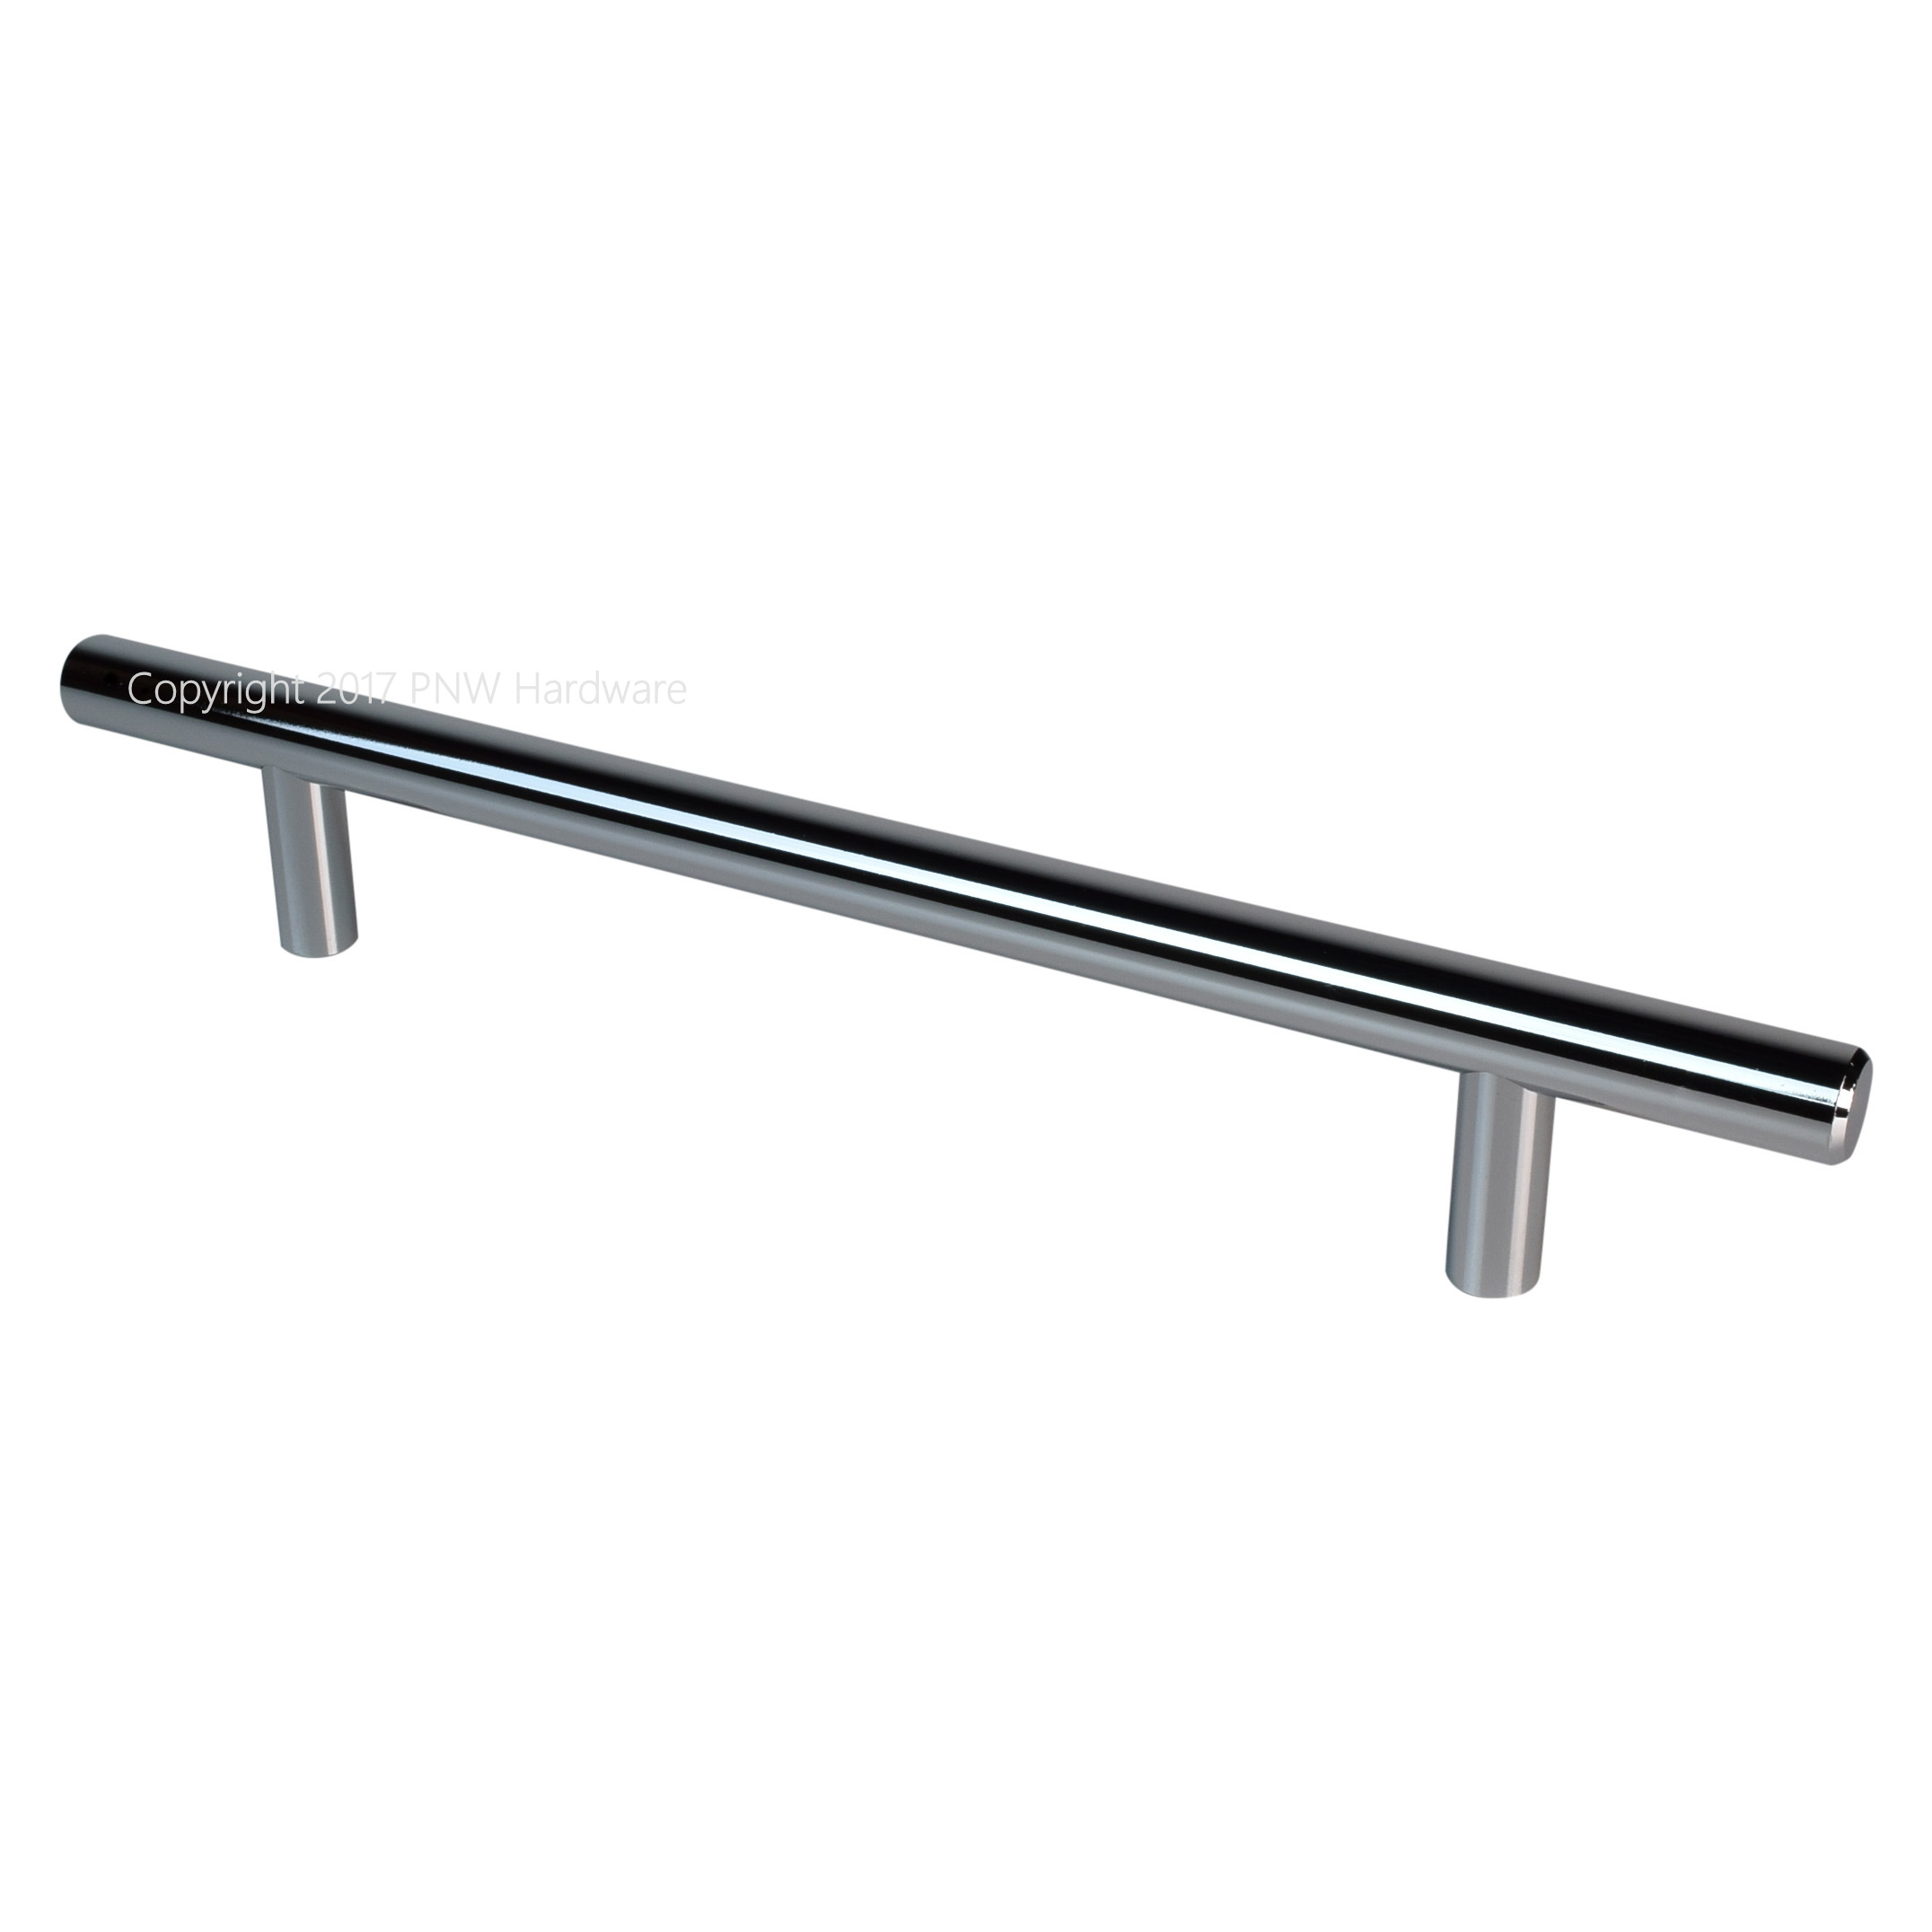 Hafele Modern Stylish Pull Handle Stainless Steel Effect Cupboard Door Handles